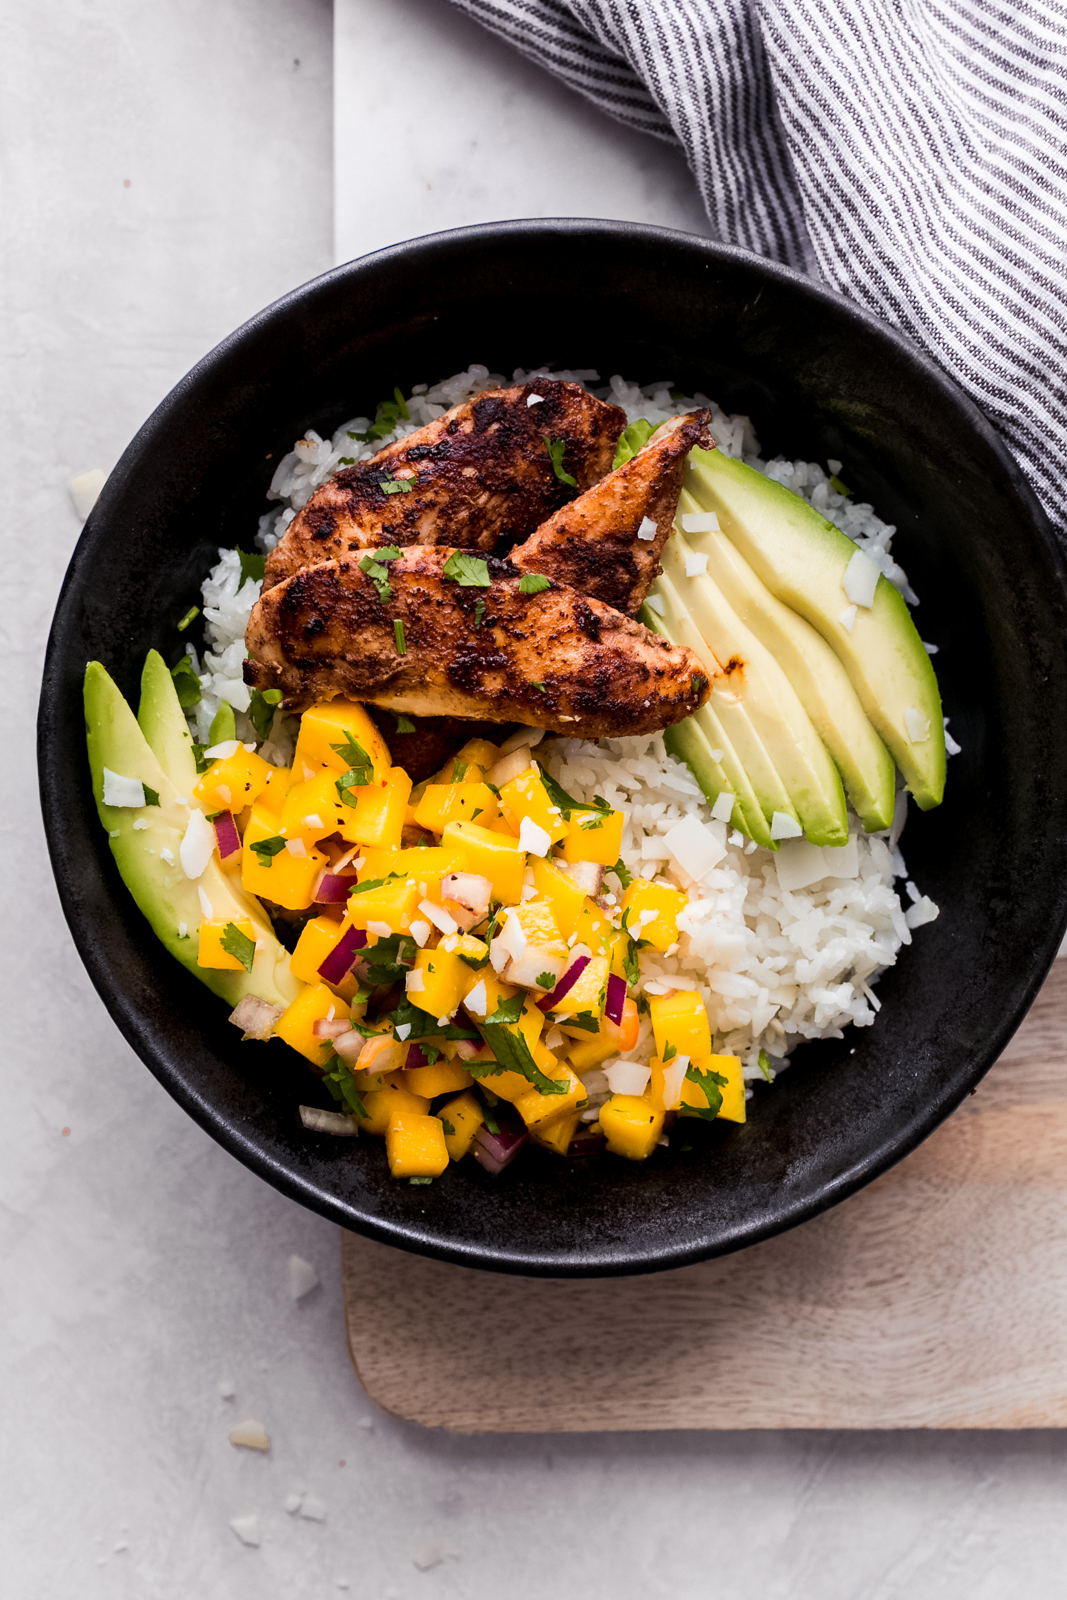 prepared rice topped with mango salsa, jerk chicken, and sliced avocados